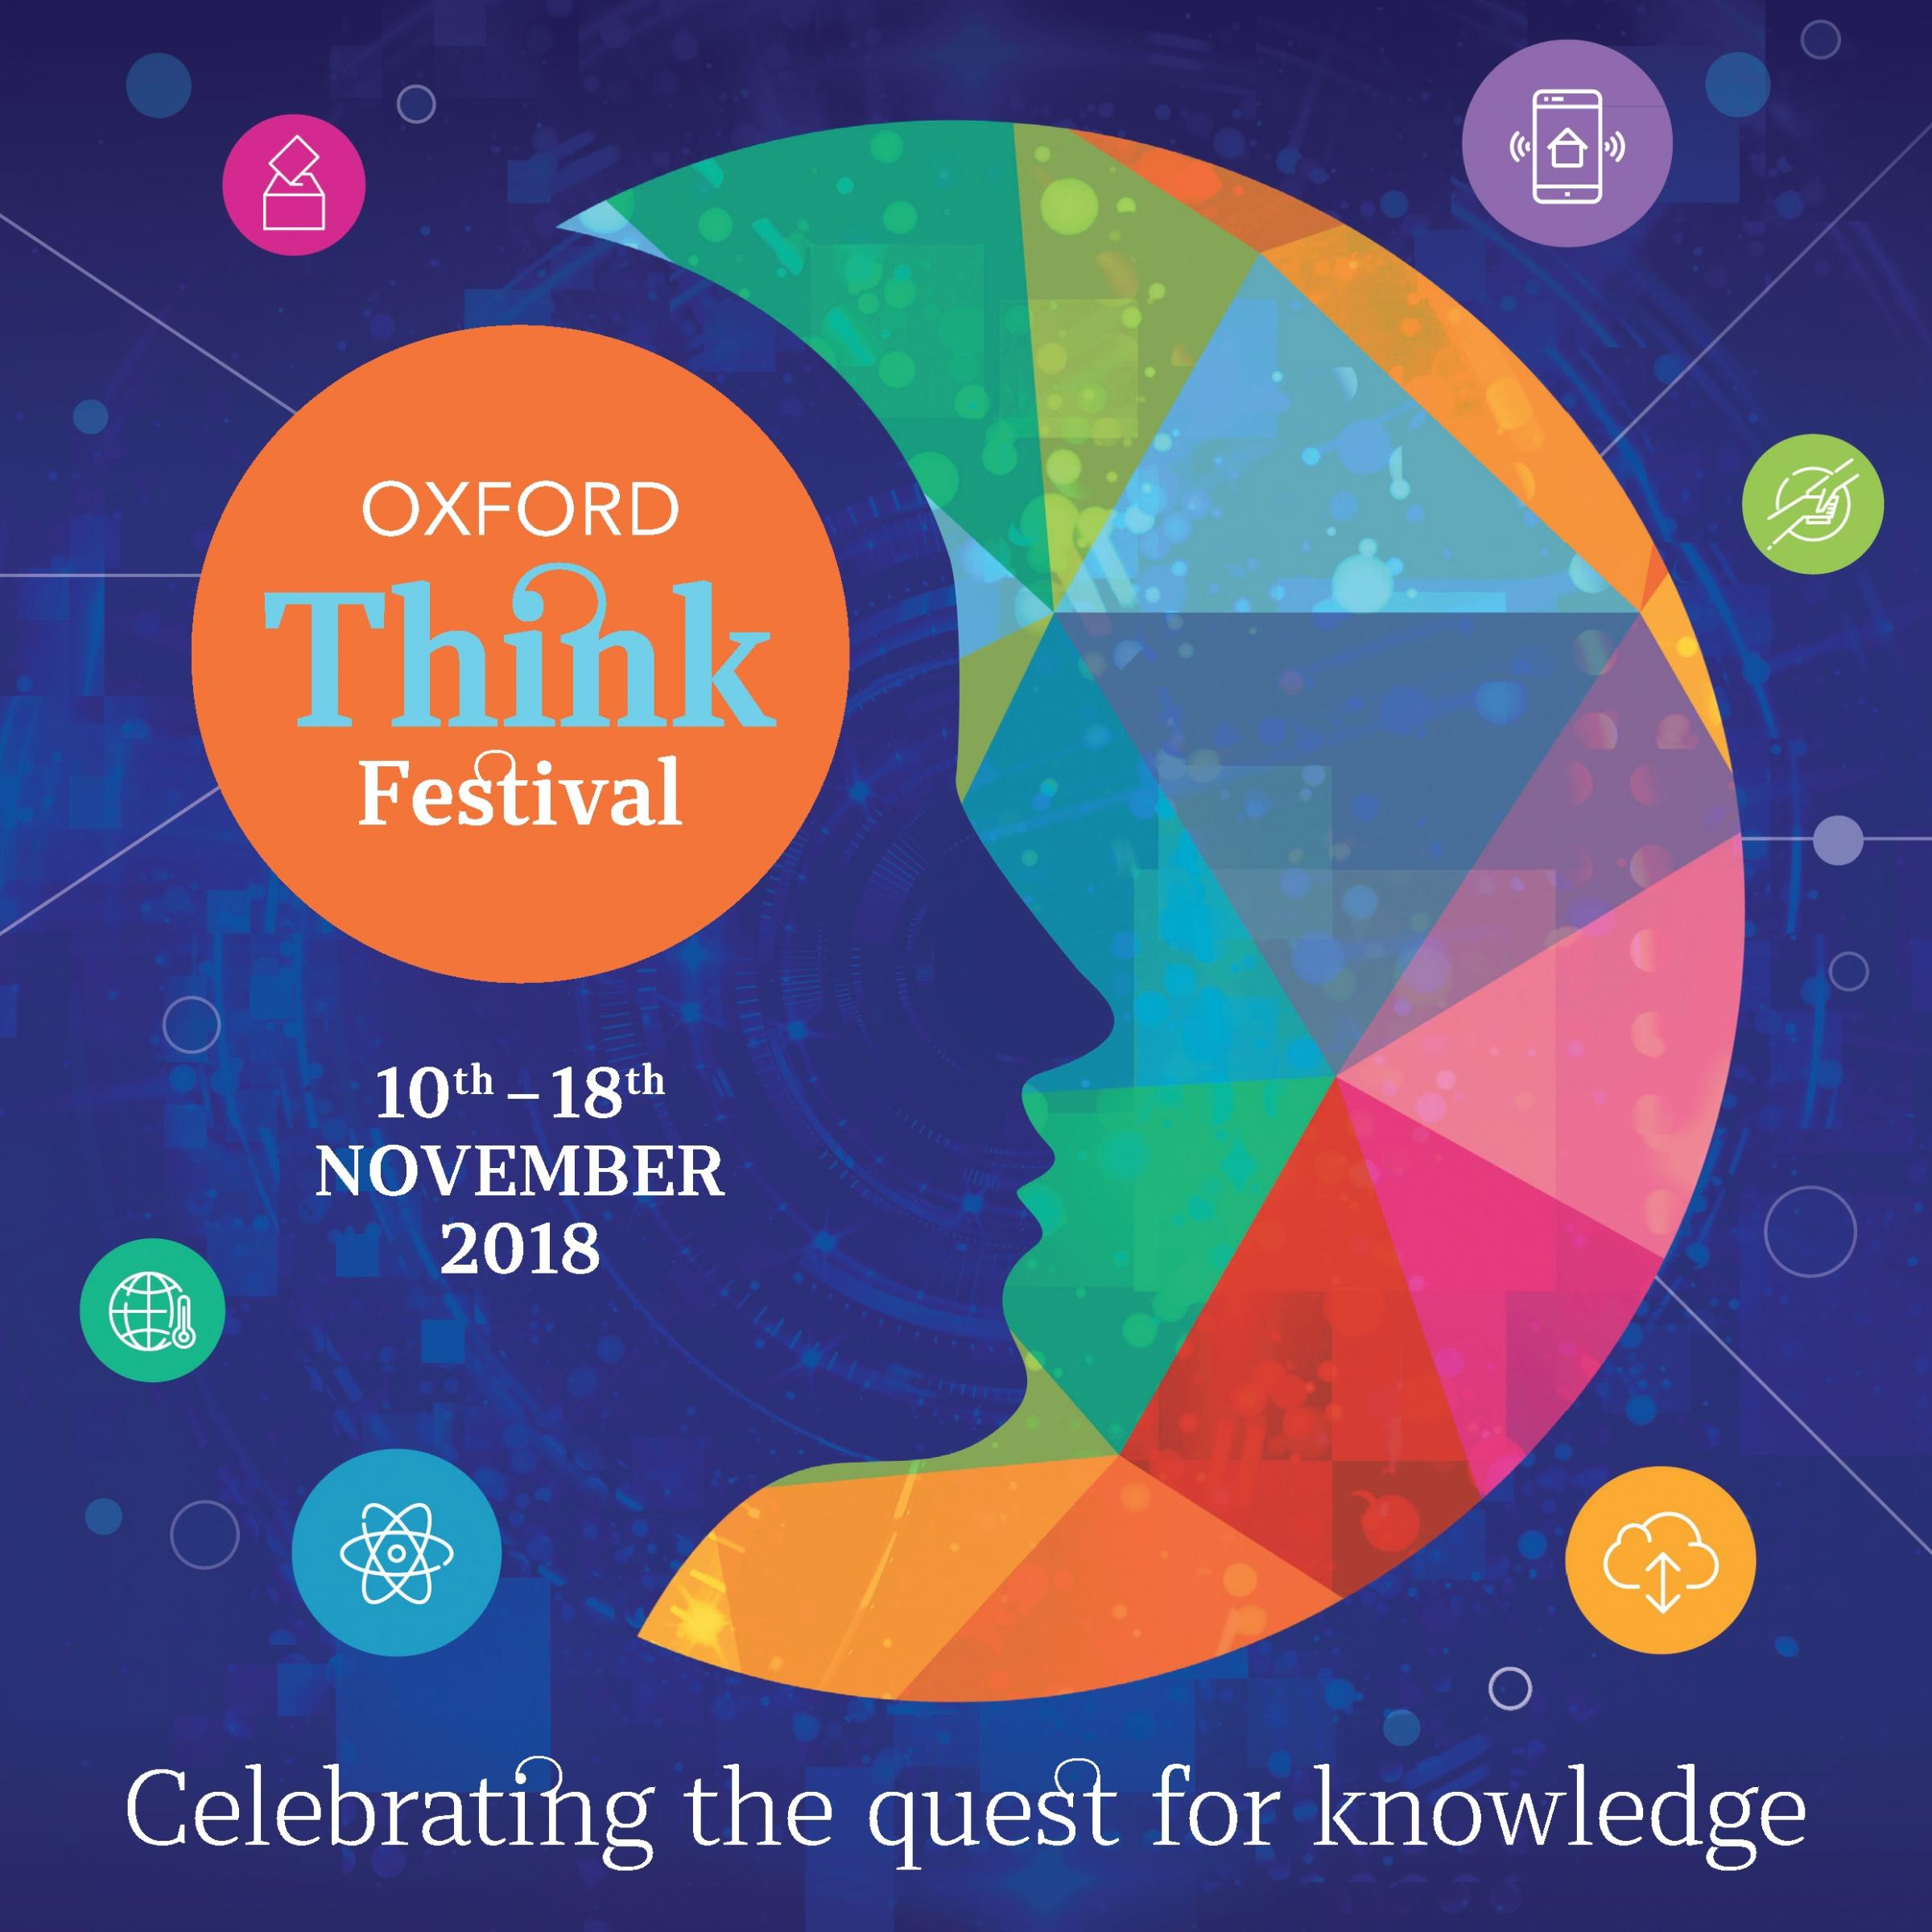 Oxford Think Festival: Tim Williamson in conversation with Richard Marshall